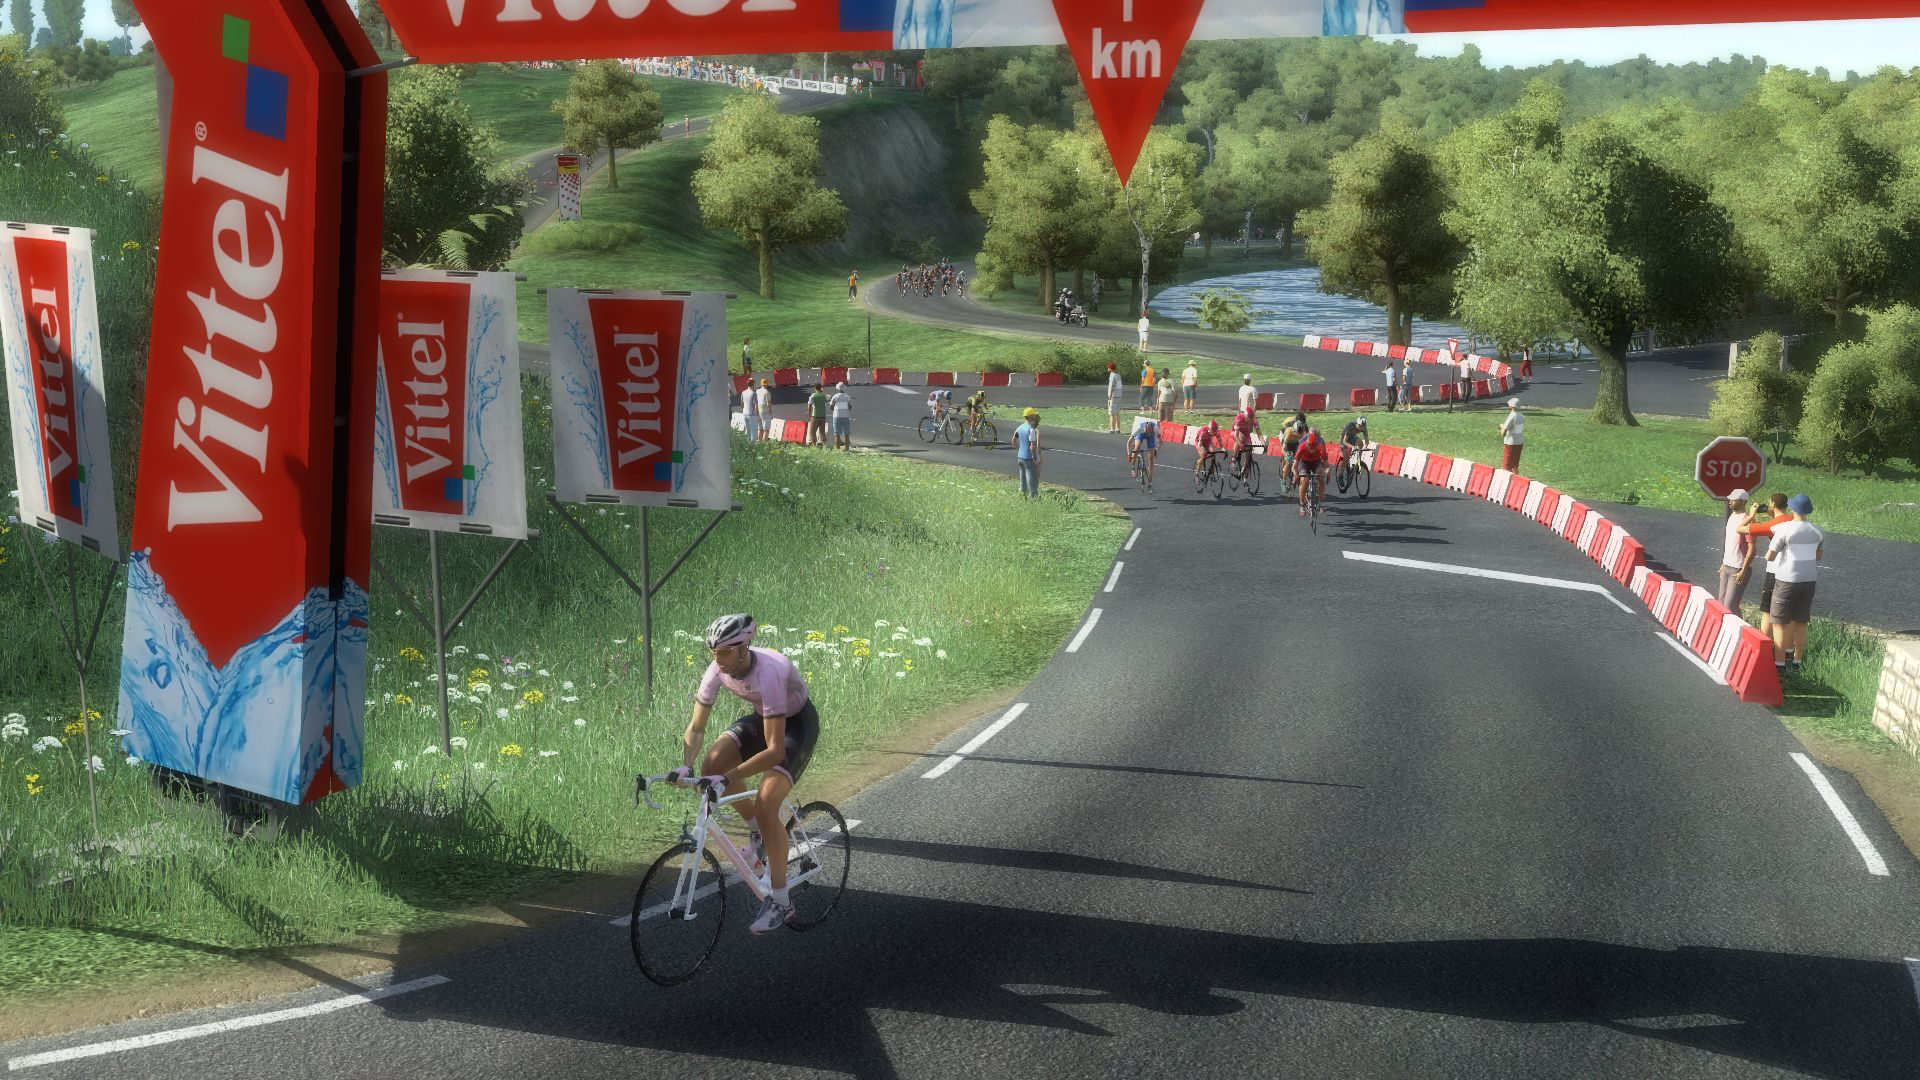 pcmdaily.com/images/mg/2019/Races/HC/Slovenie/mg19_slo_s02_14.jpg